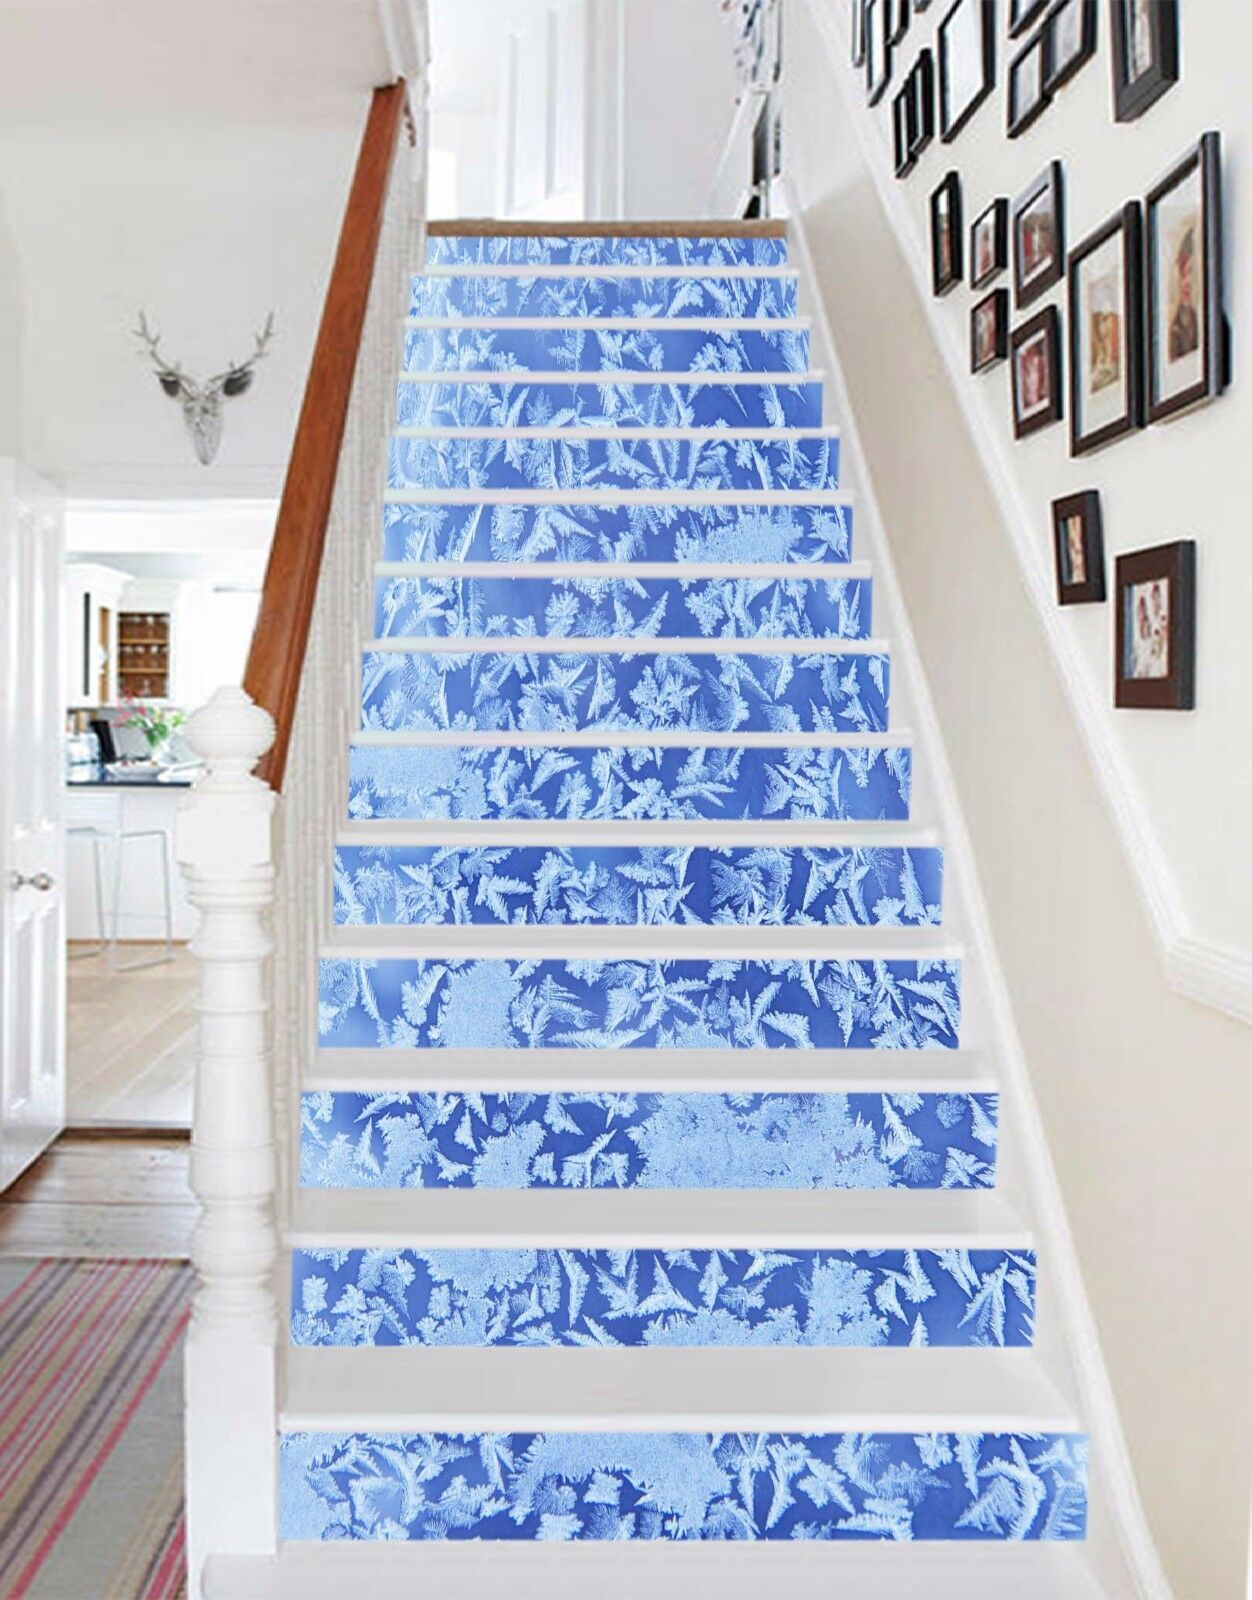 3D Ice Snowflakes 8 Stair Risers Decoration Photo Mural Vinyl Decal Wallpaper AU